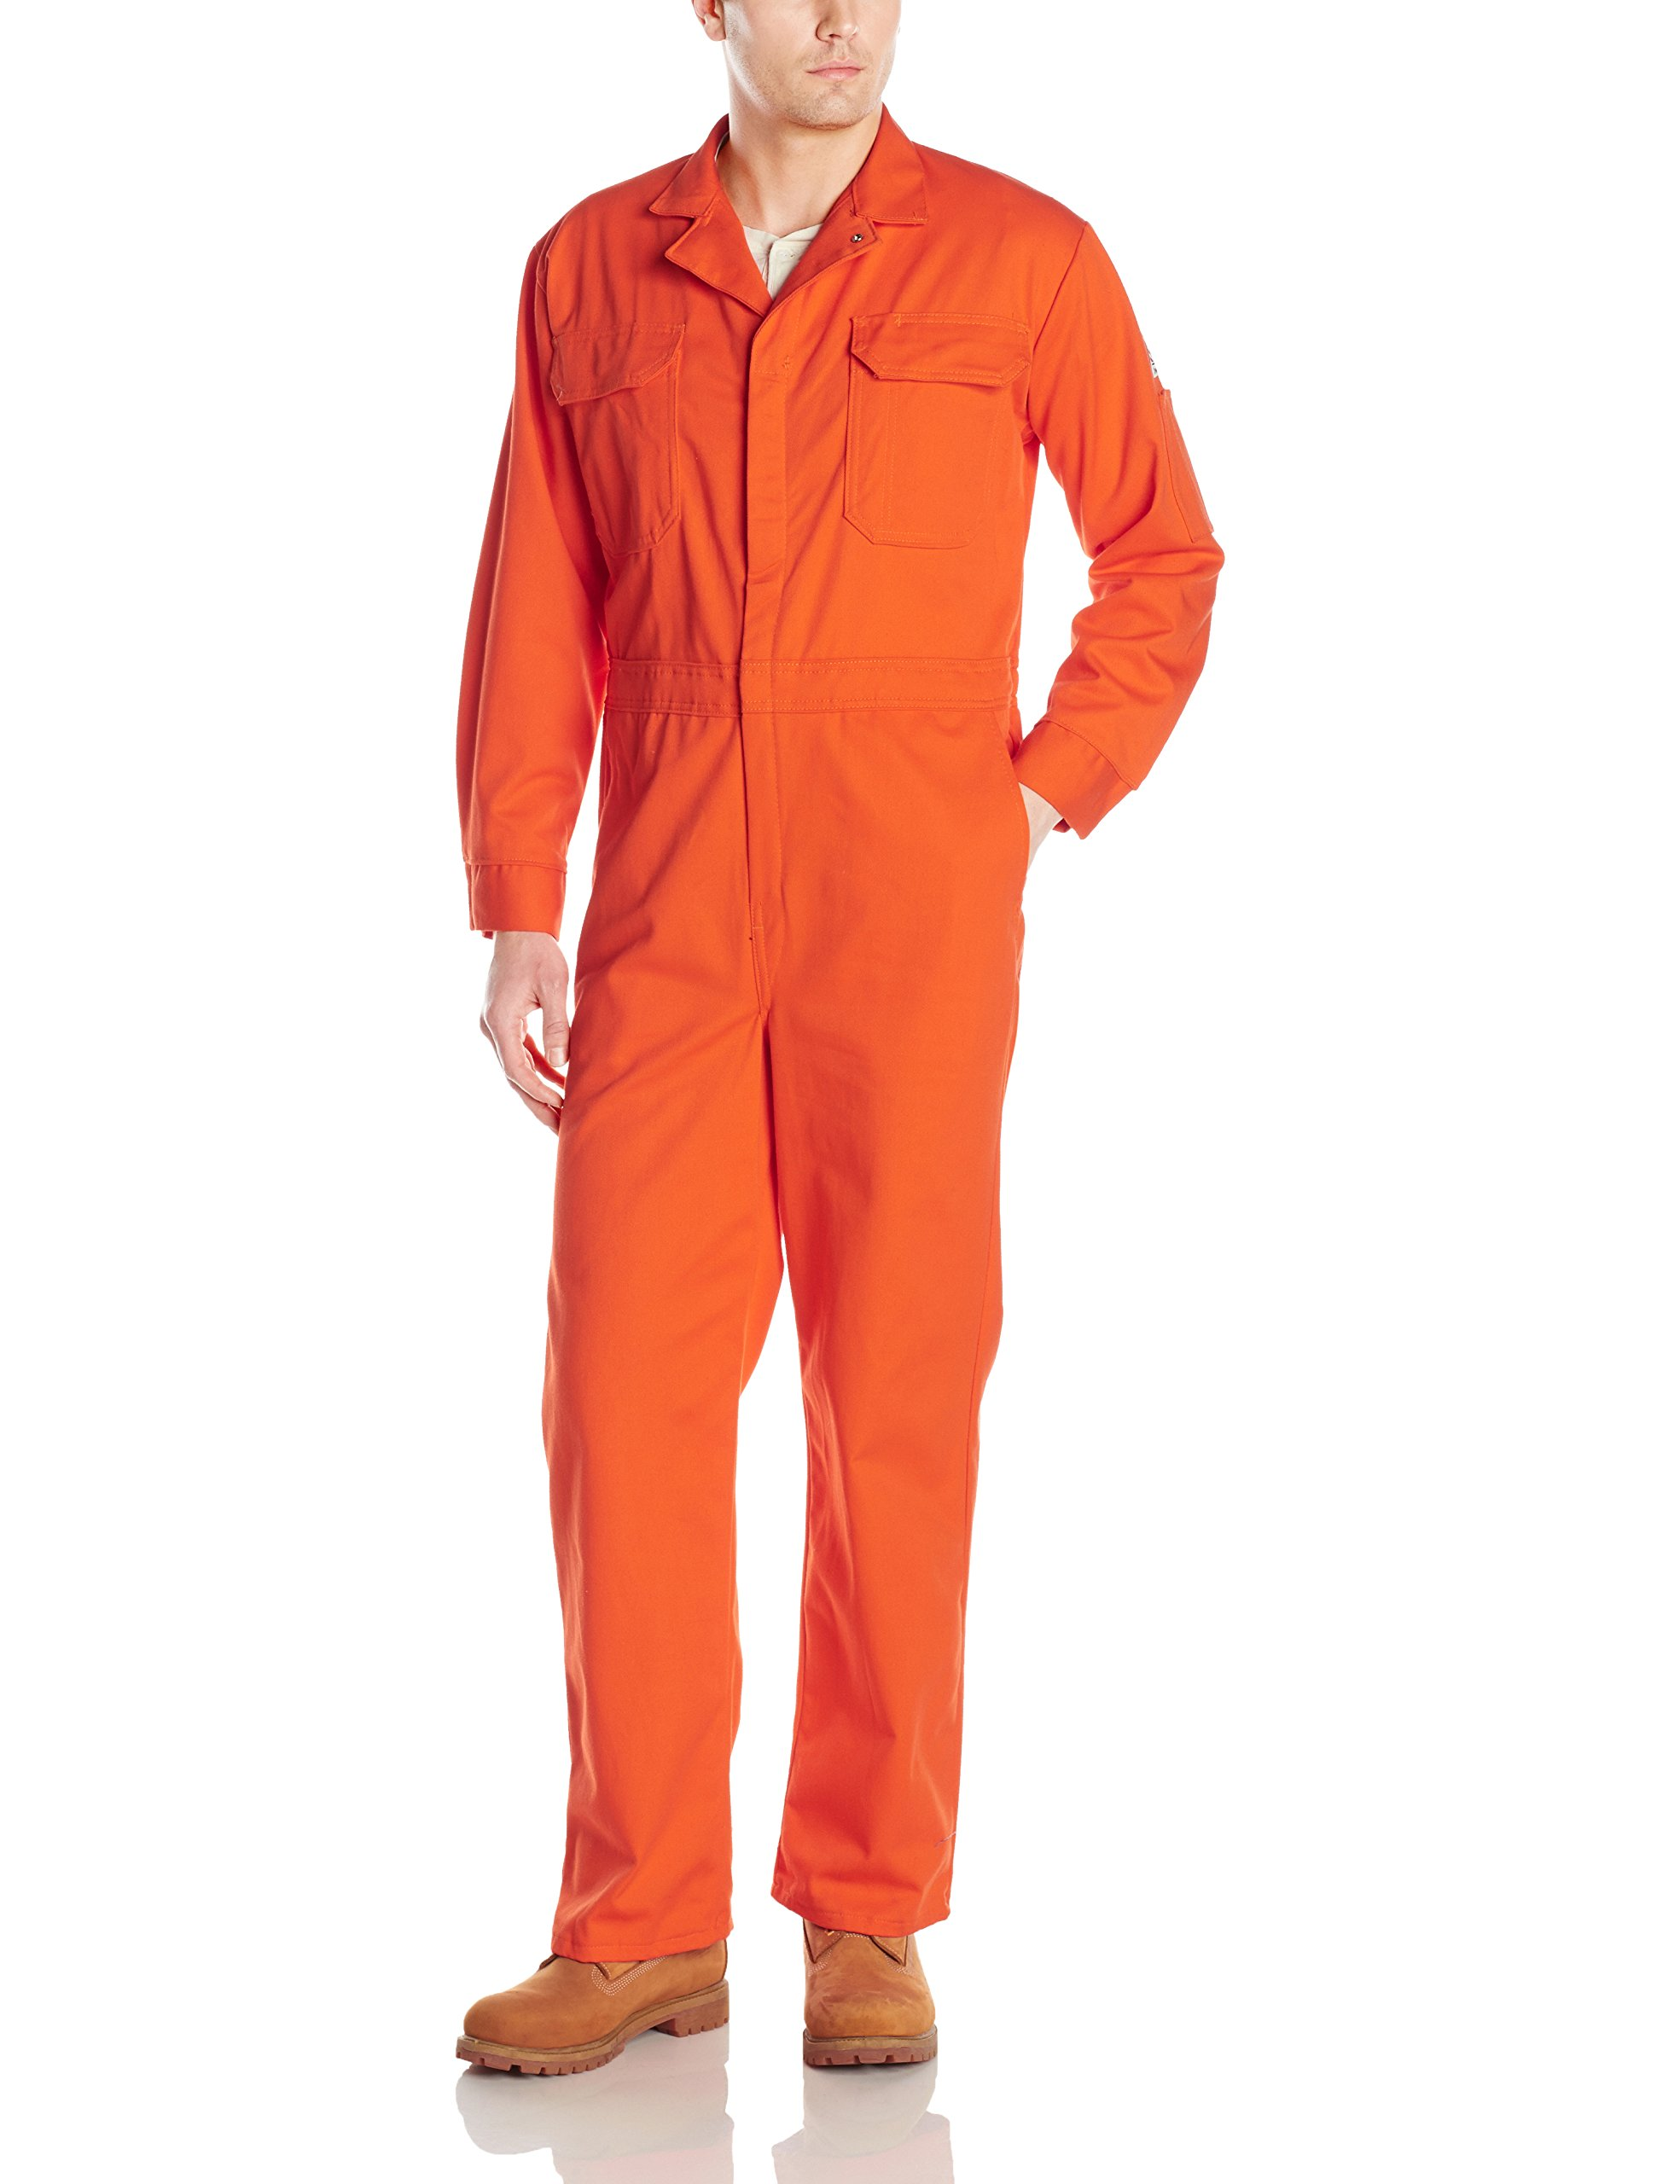 049c7d73c341 Galleon - Bulwark Men s Flame Resistant 9 Oz Twill Cotton Deluxe Coverall  With Concealed Snap Cuff